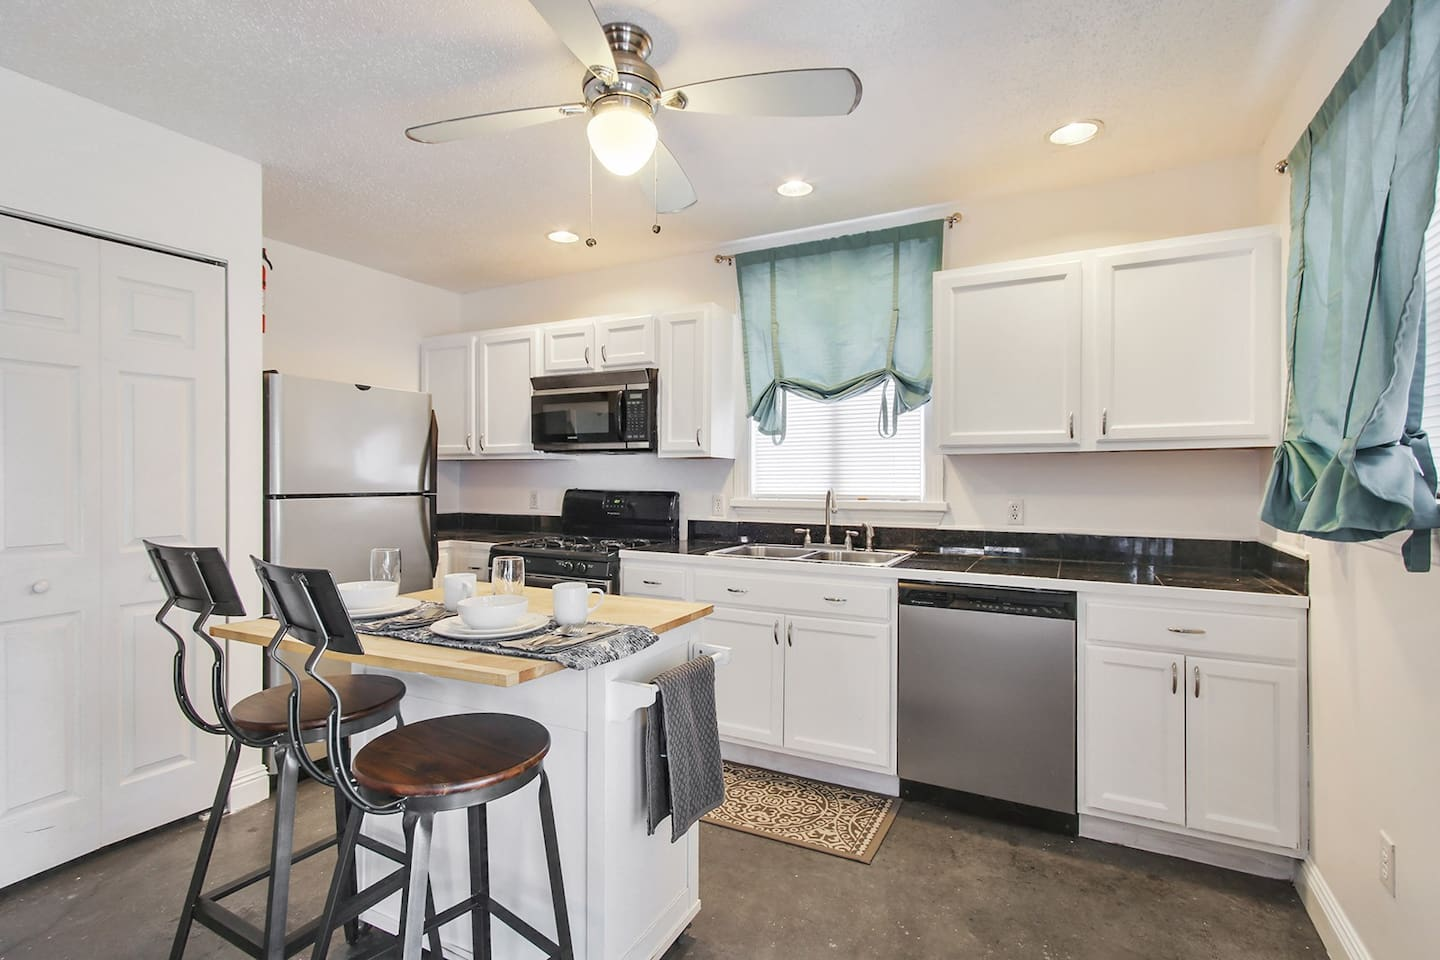 Cozy Uptown Flat - Guest suites for Rent in New Orleans, Louisiana ...